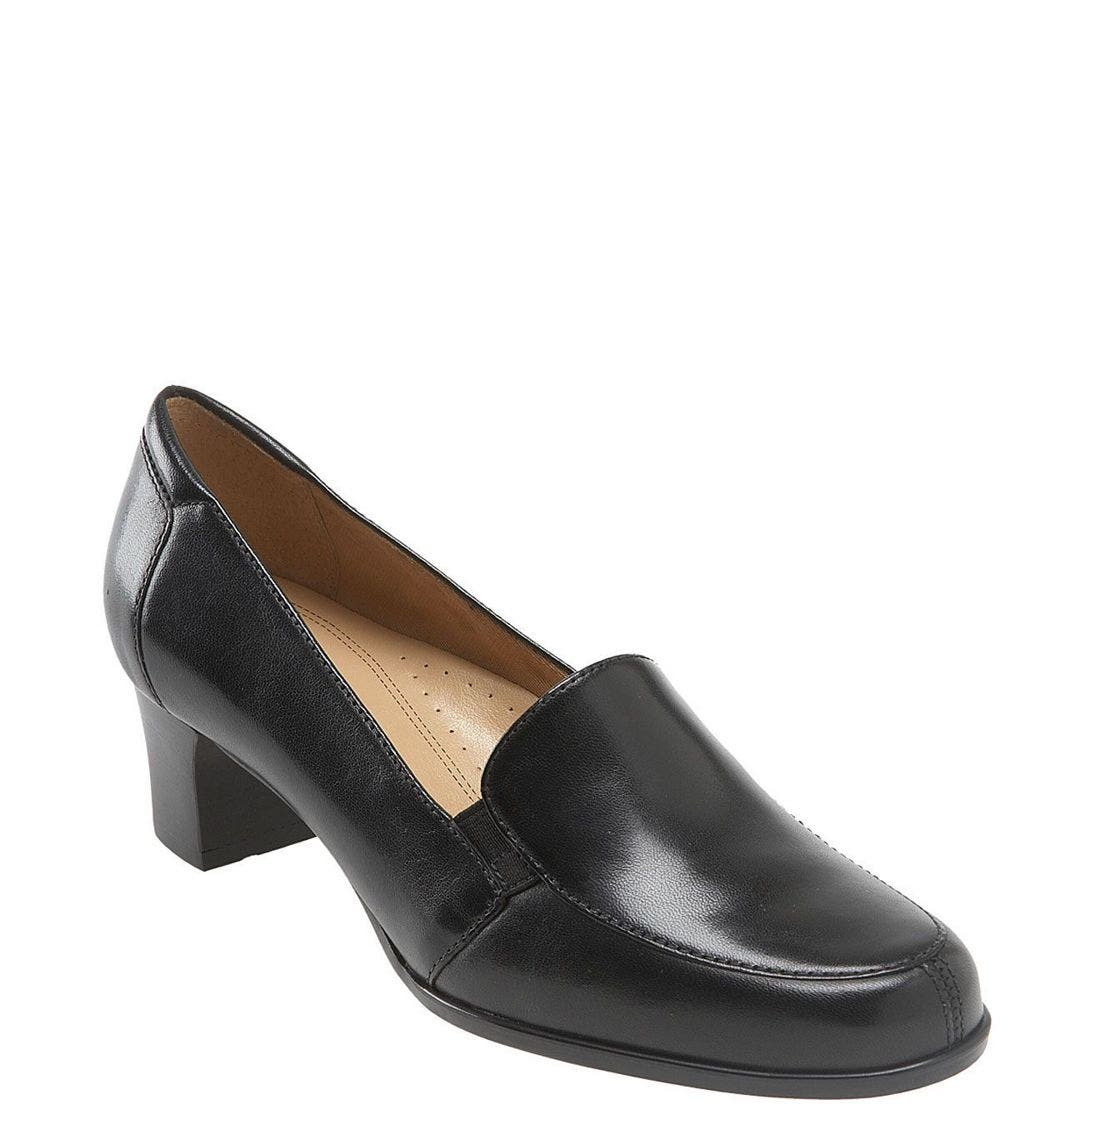 Main Image - Trotters 'Gloria' Pump